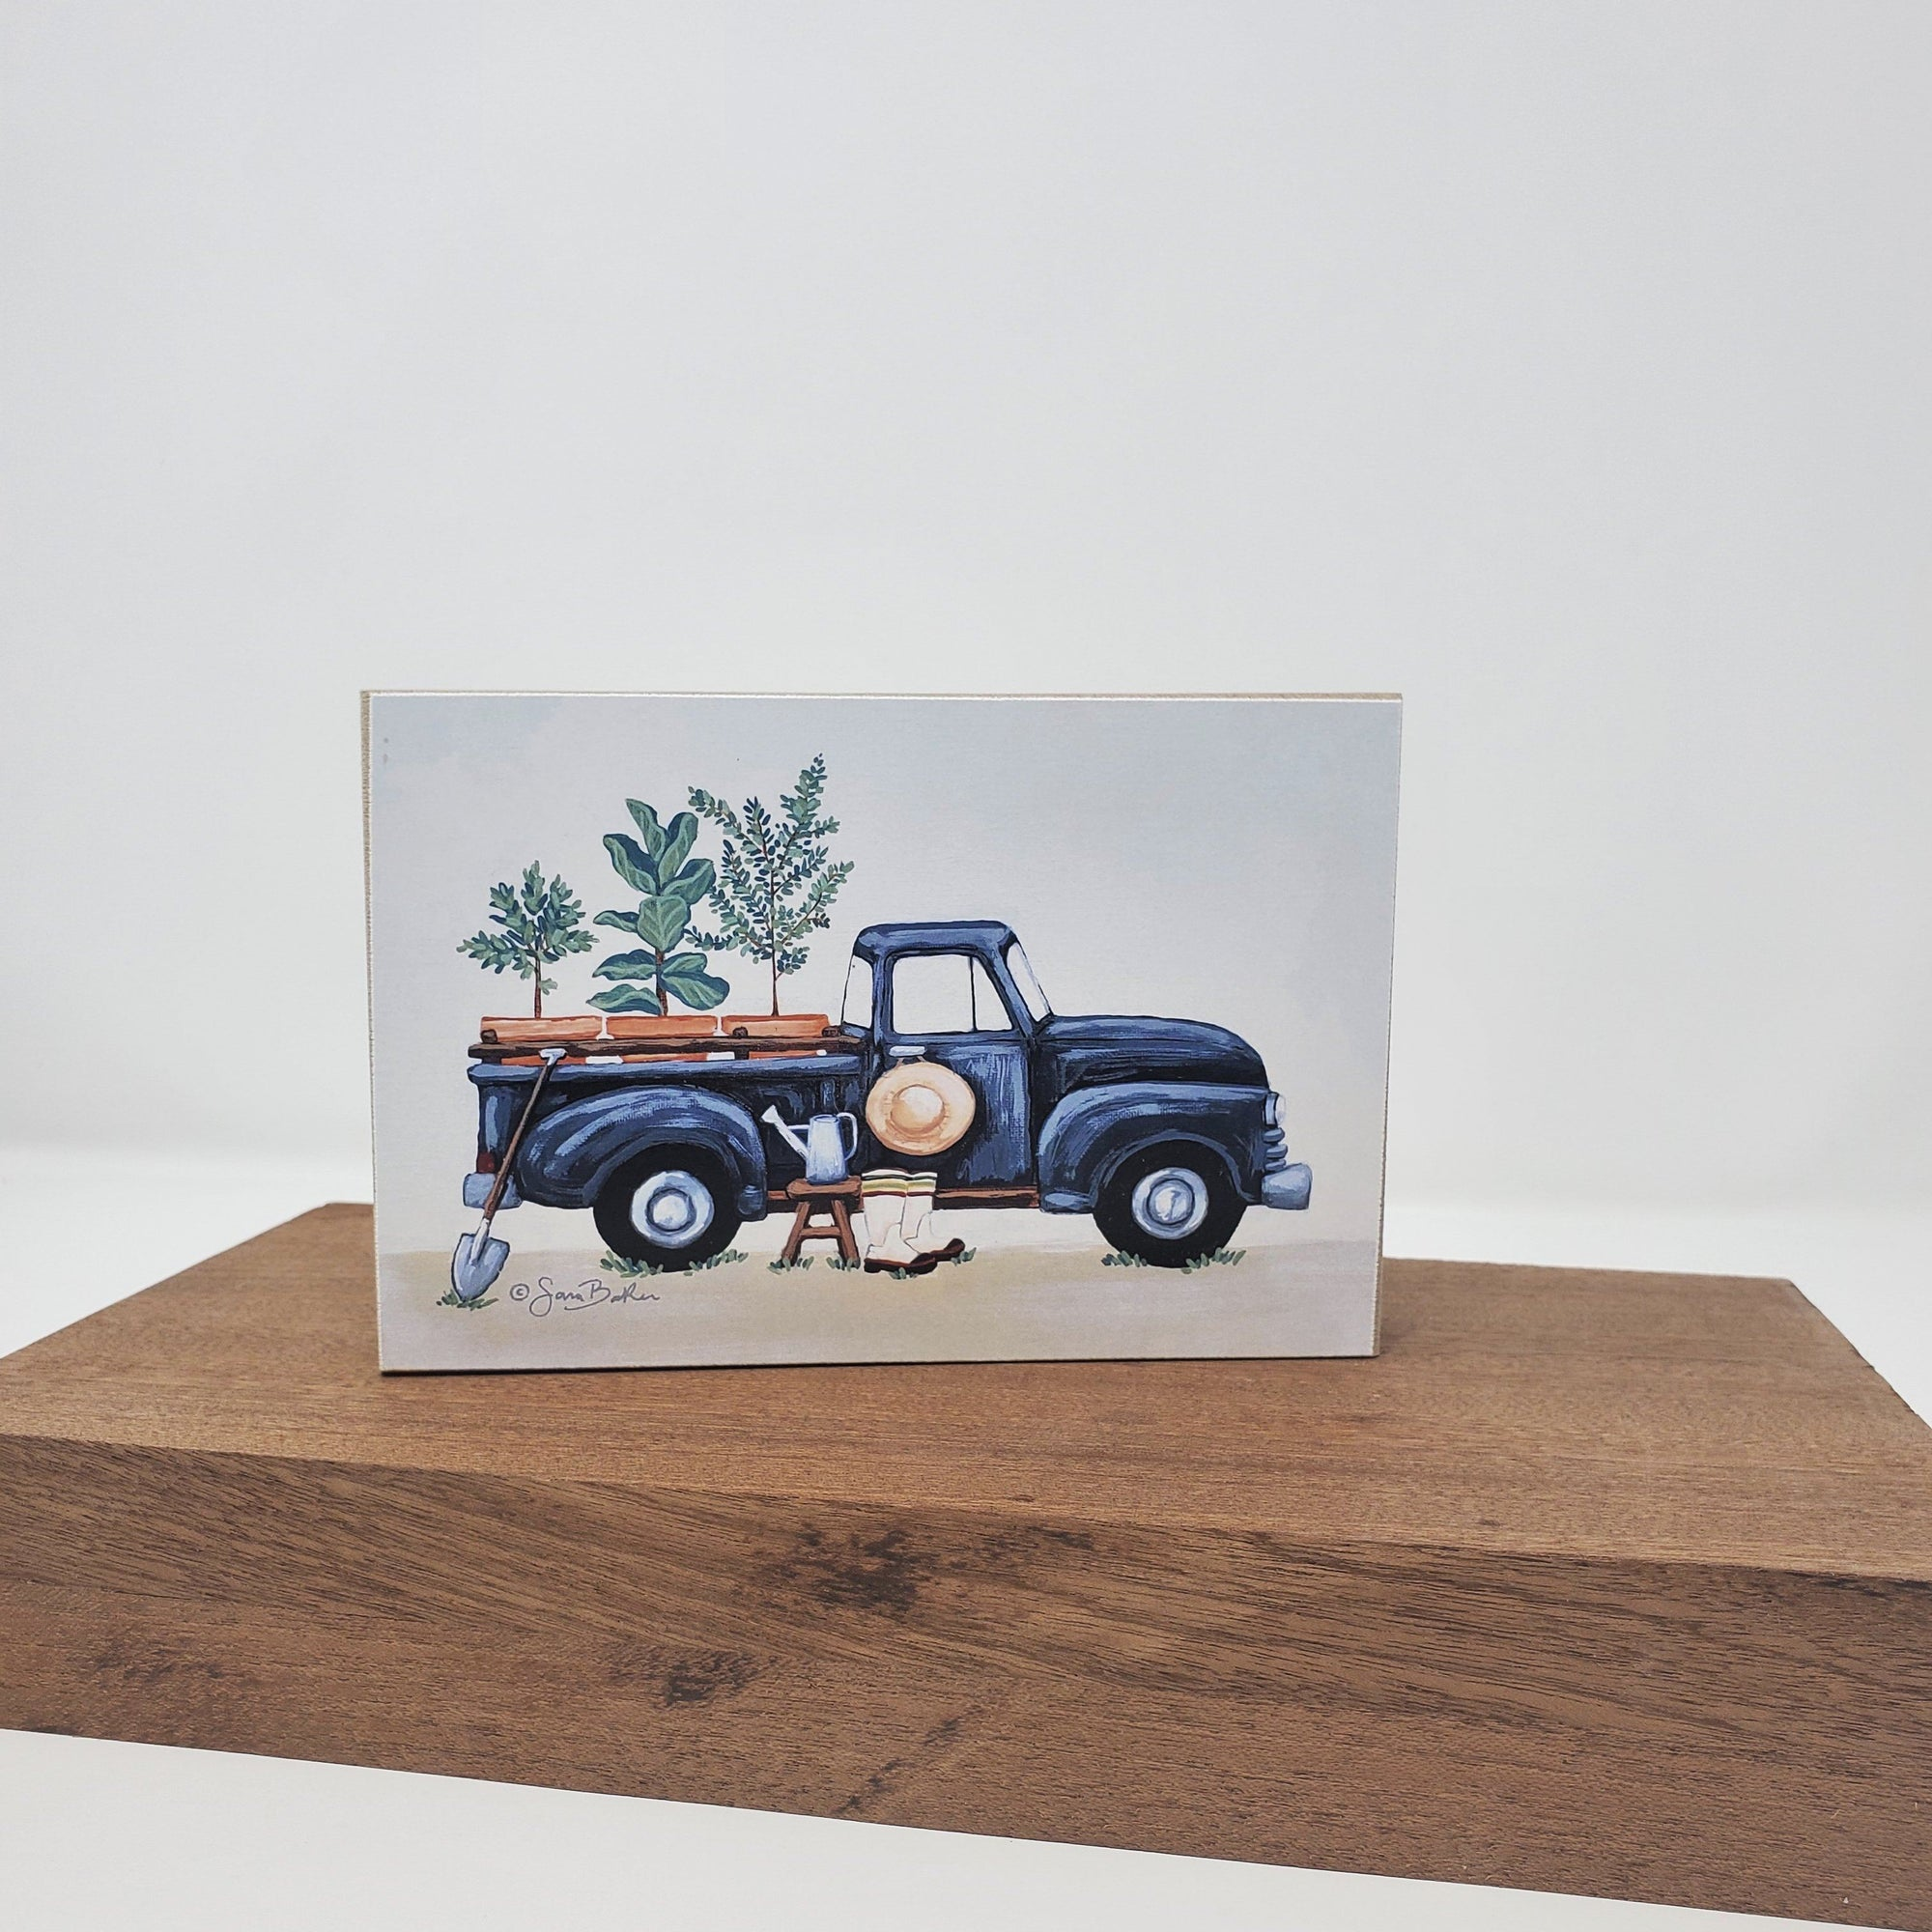 Rustic Pickup Truck Gardening Block Sign Garden Decor A Rustic Feeling